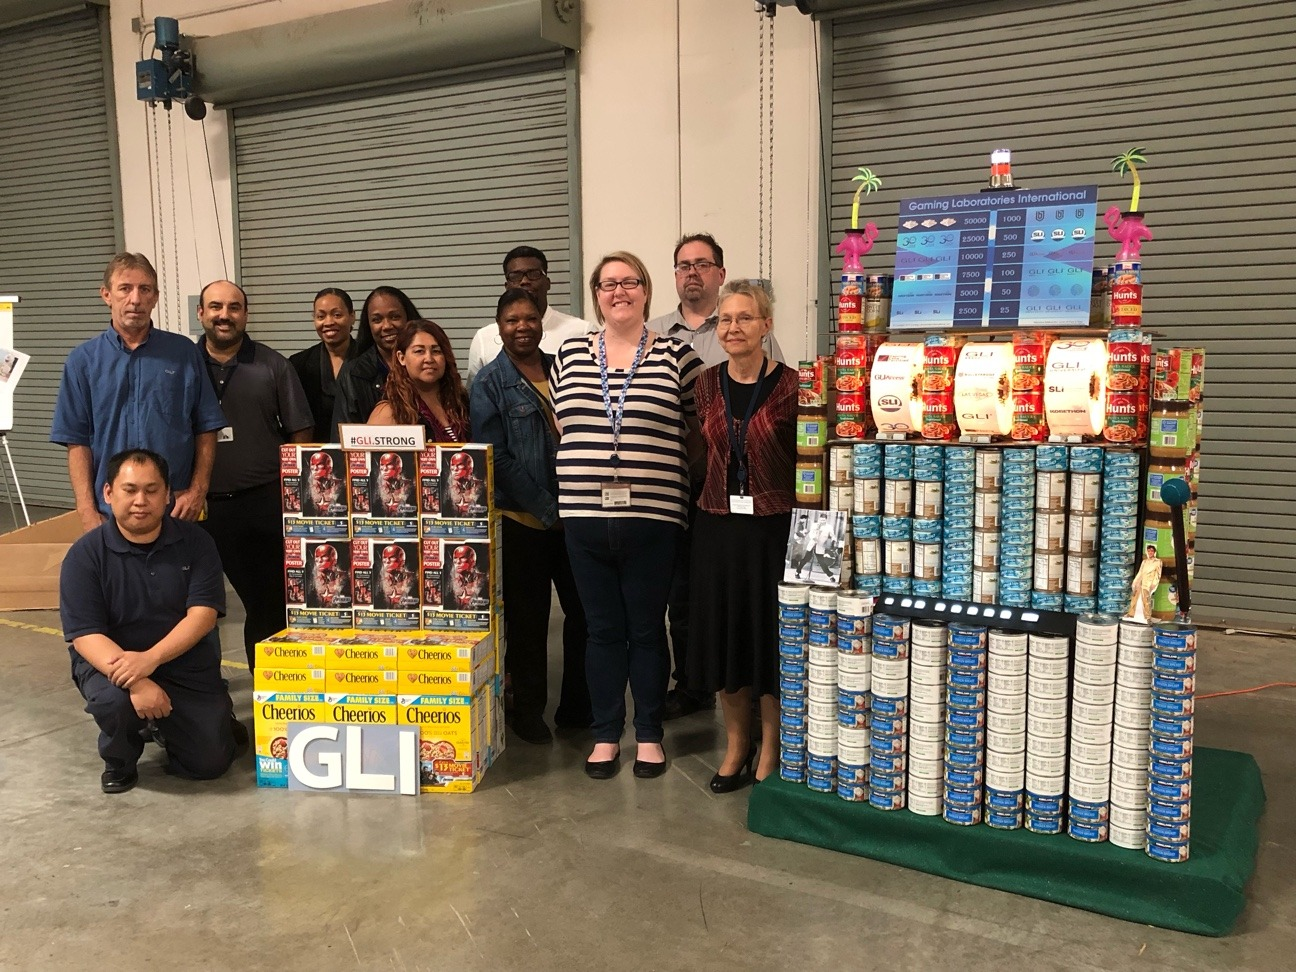 Las Vegas Office Canned Food Charity Competition